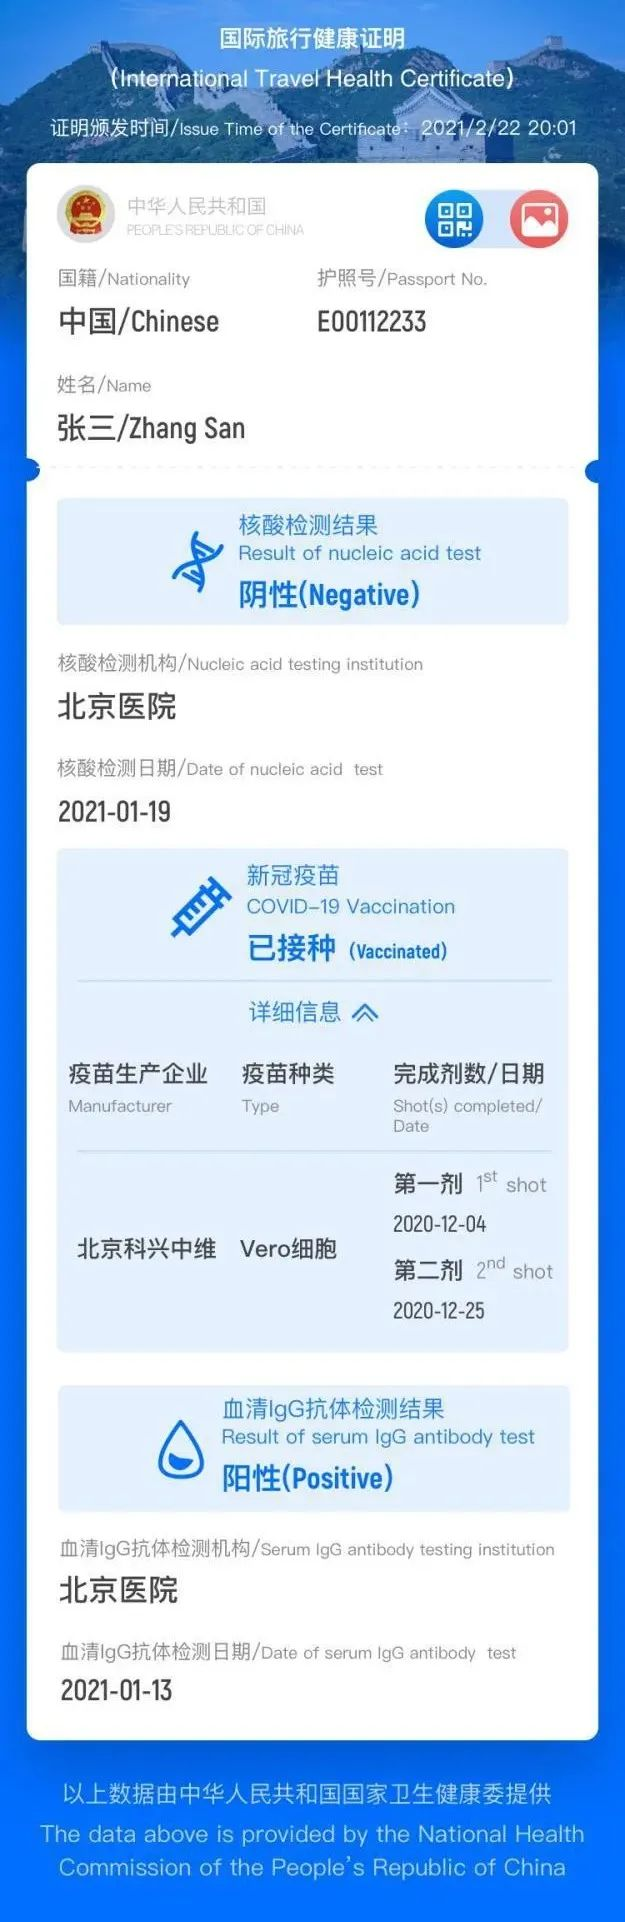 A sample image of a digital health certificate for international travelers on the WeChat mini program. [Photo/Foreign Ministry's Department of Consular Affairs]